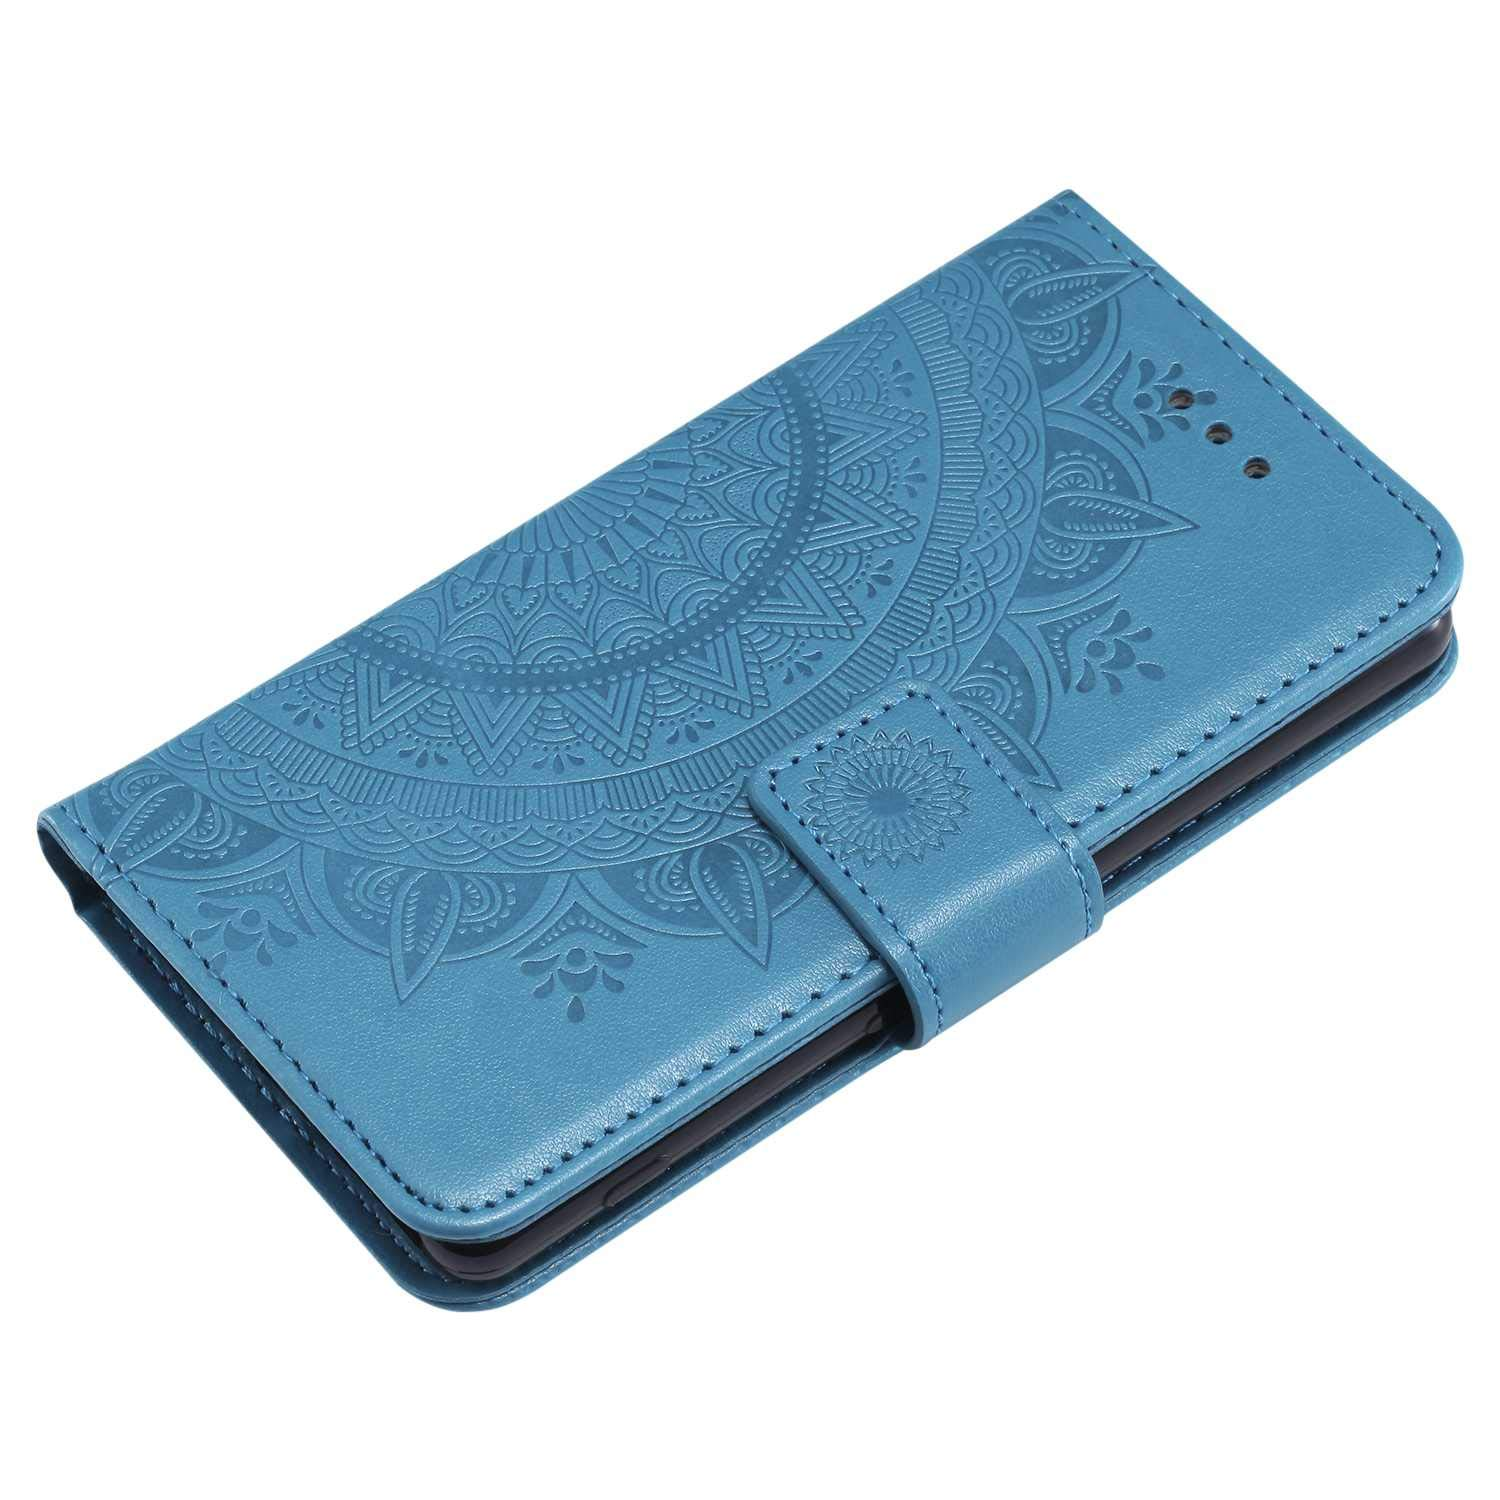 Sony Xperia XA1 Case Premium Wallet Case with Blue The Grafu Leather Case Kickstand Function Card Slots Flip Notebook Cover for Sony Xperia XA1